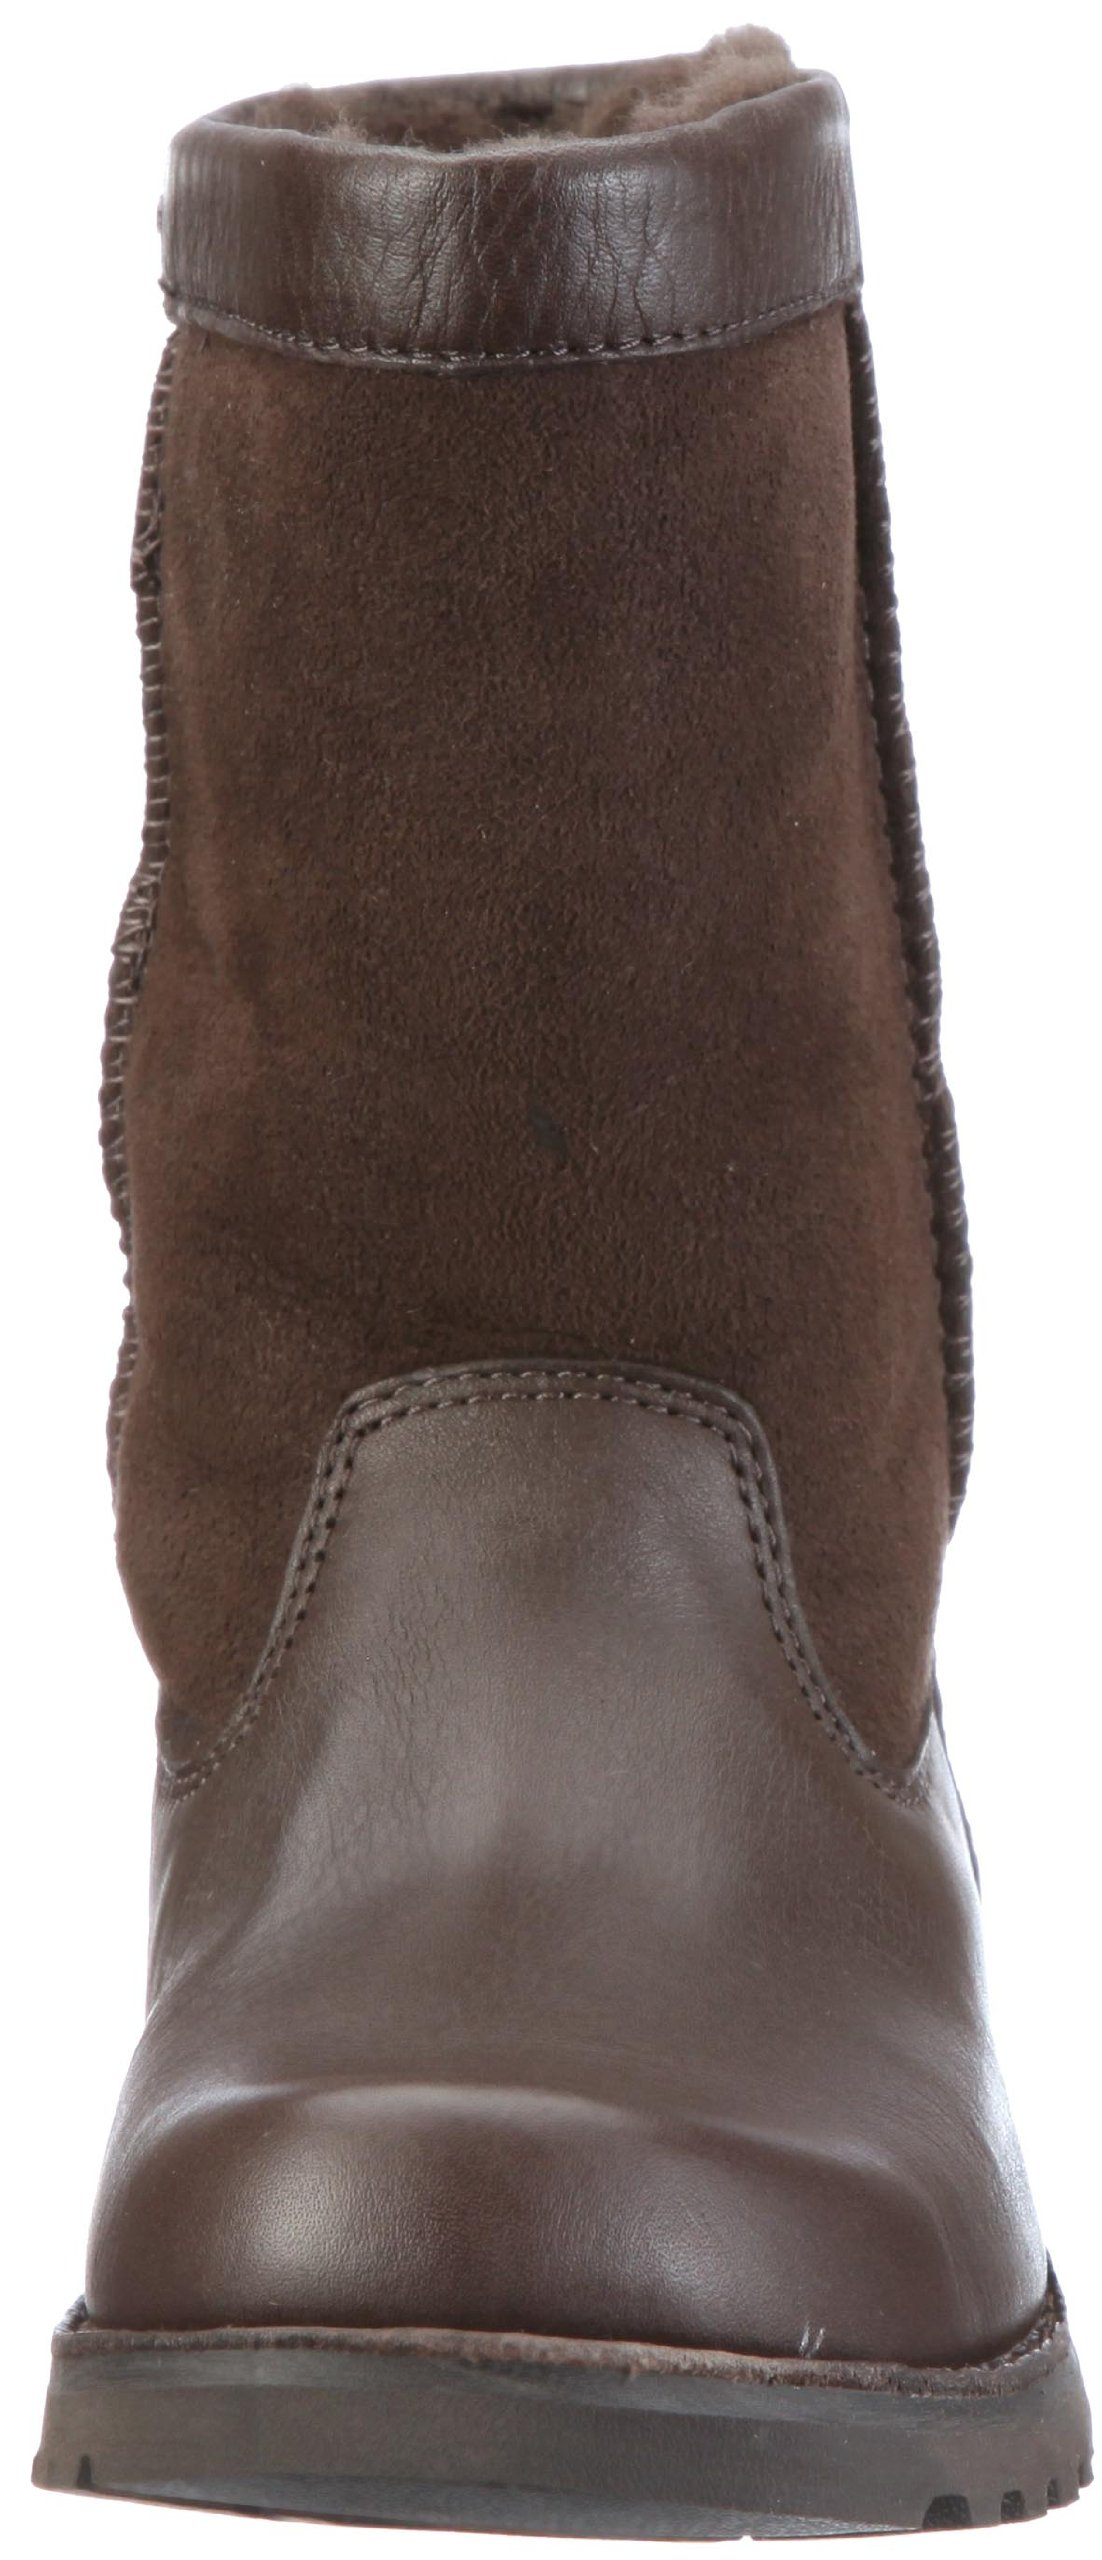 UGG Australia Children's Riverton Suede Boots,Chocolate/Chocolate,5 Child US by UGG (Image #4)